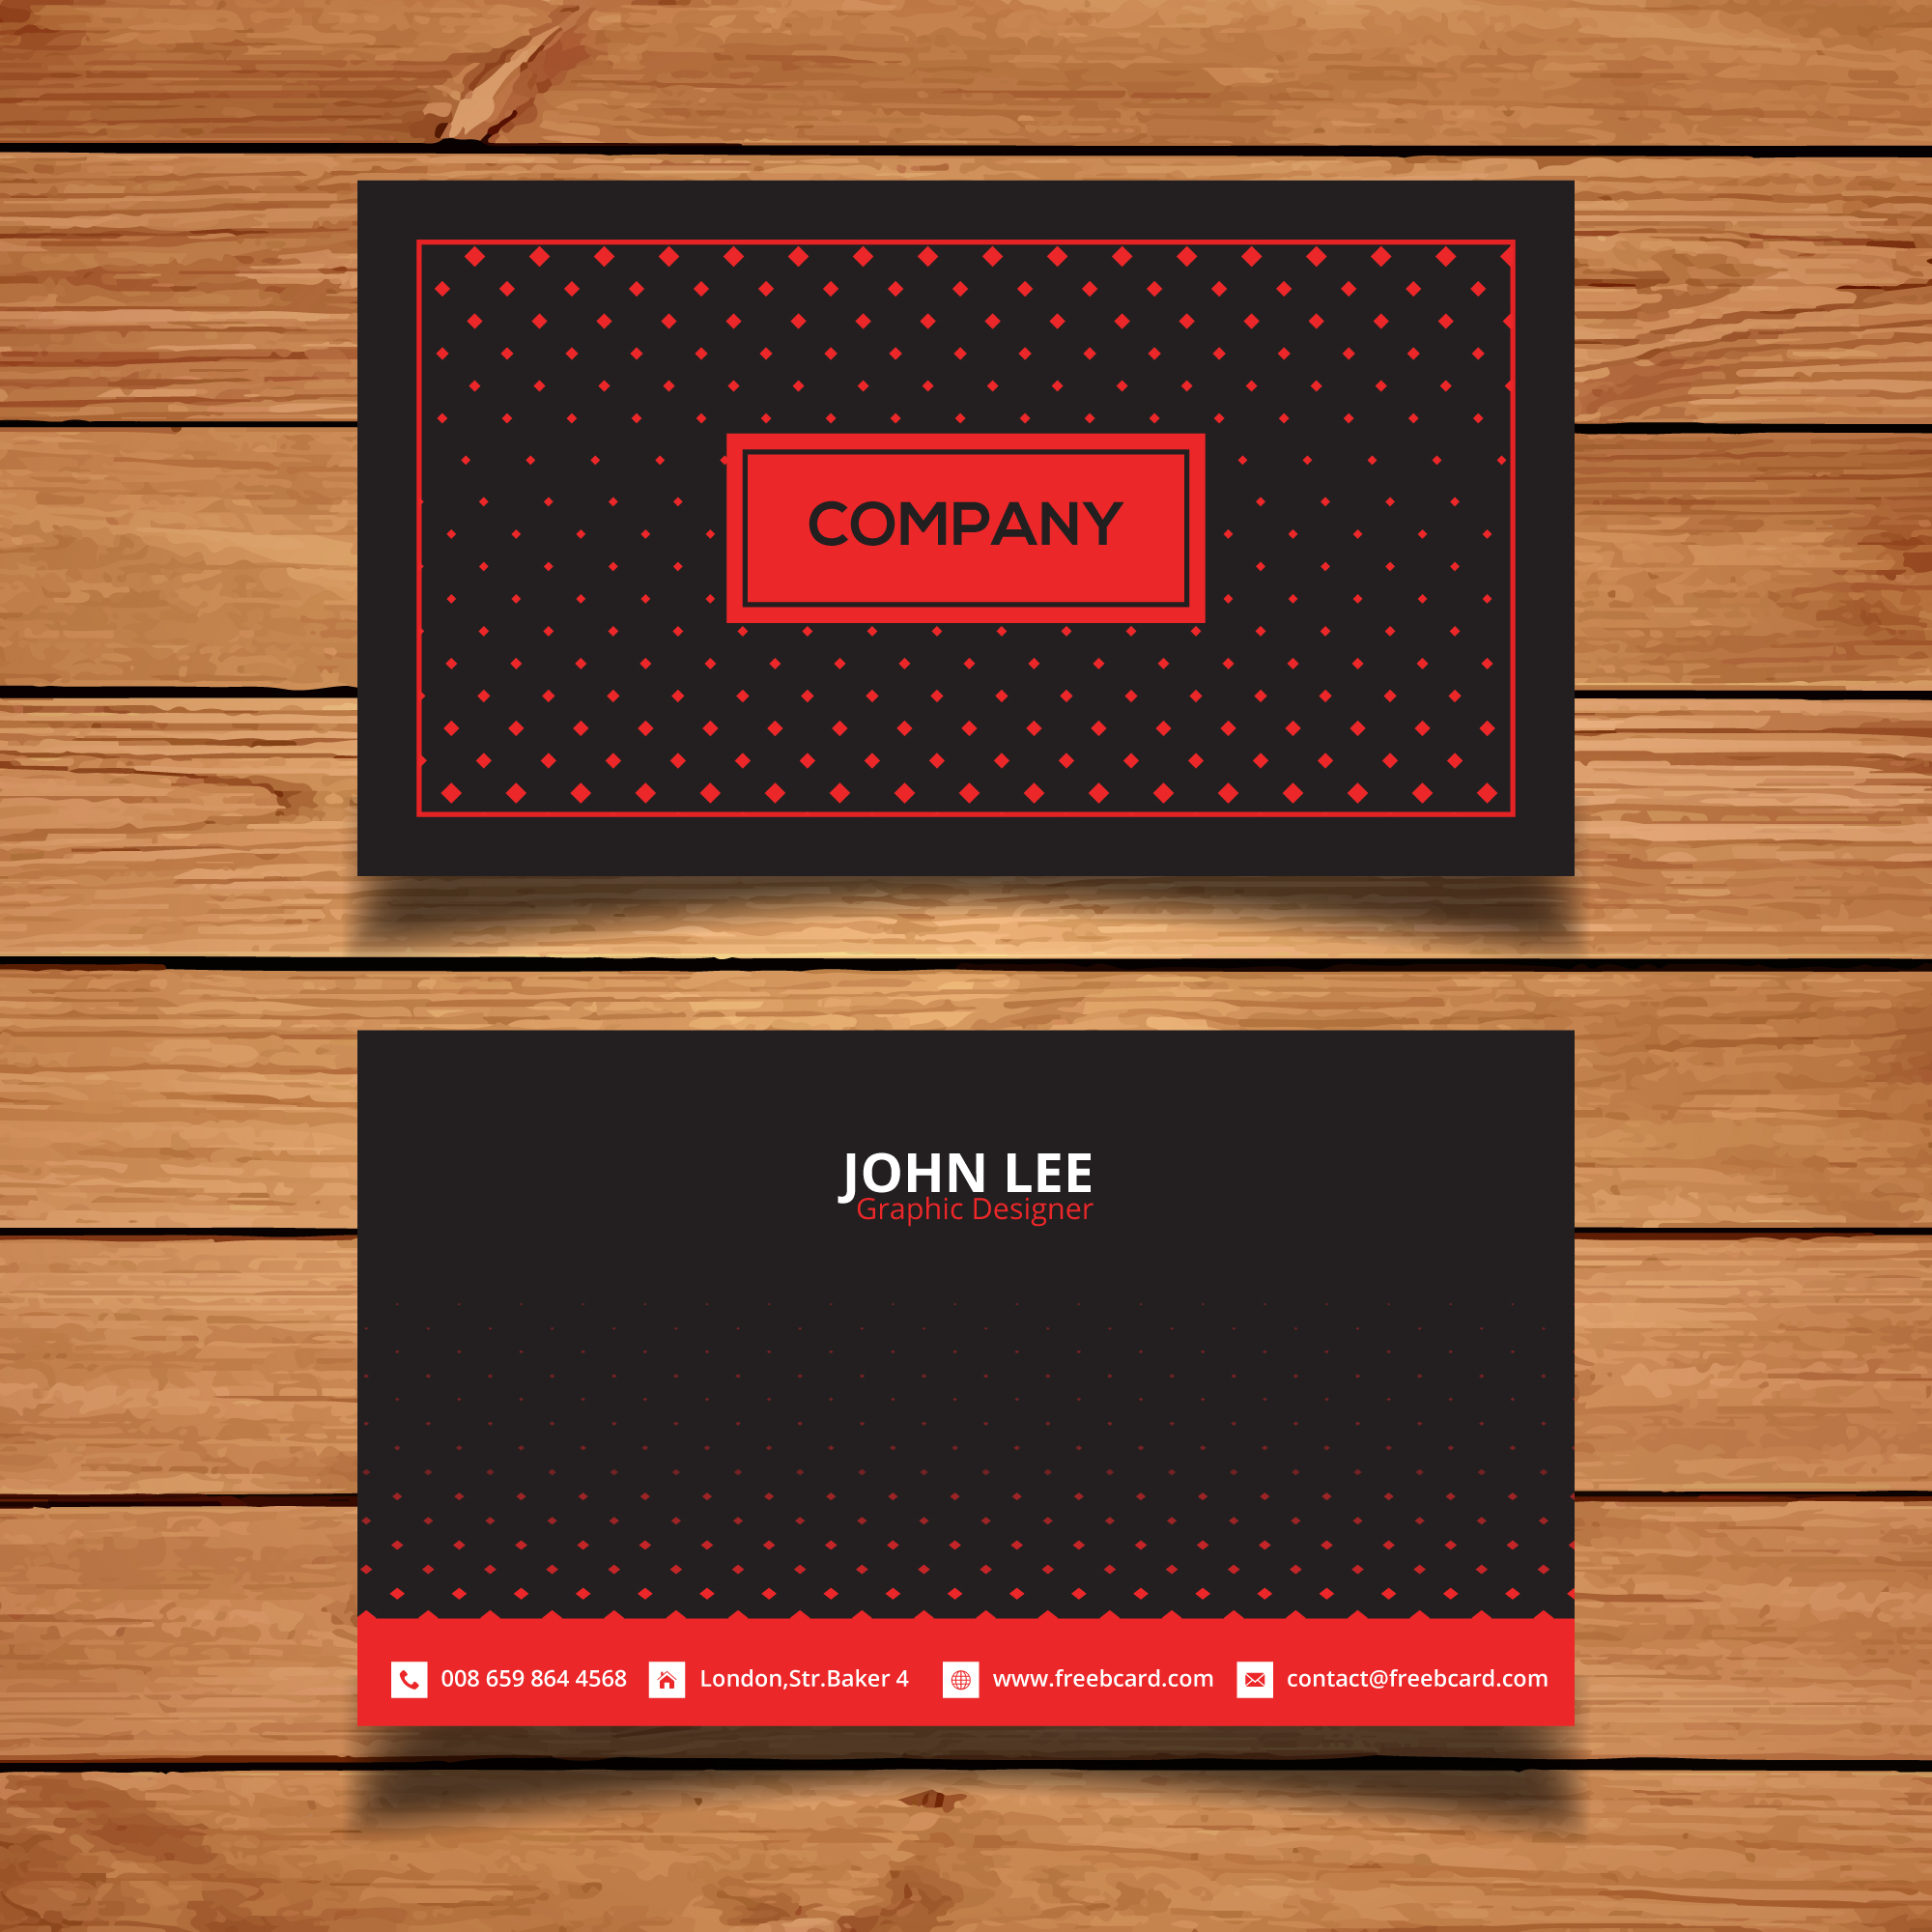 Black and red corporate card with dots